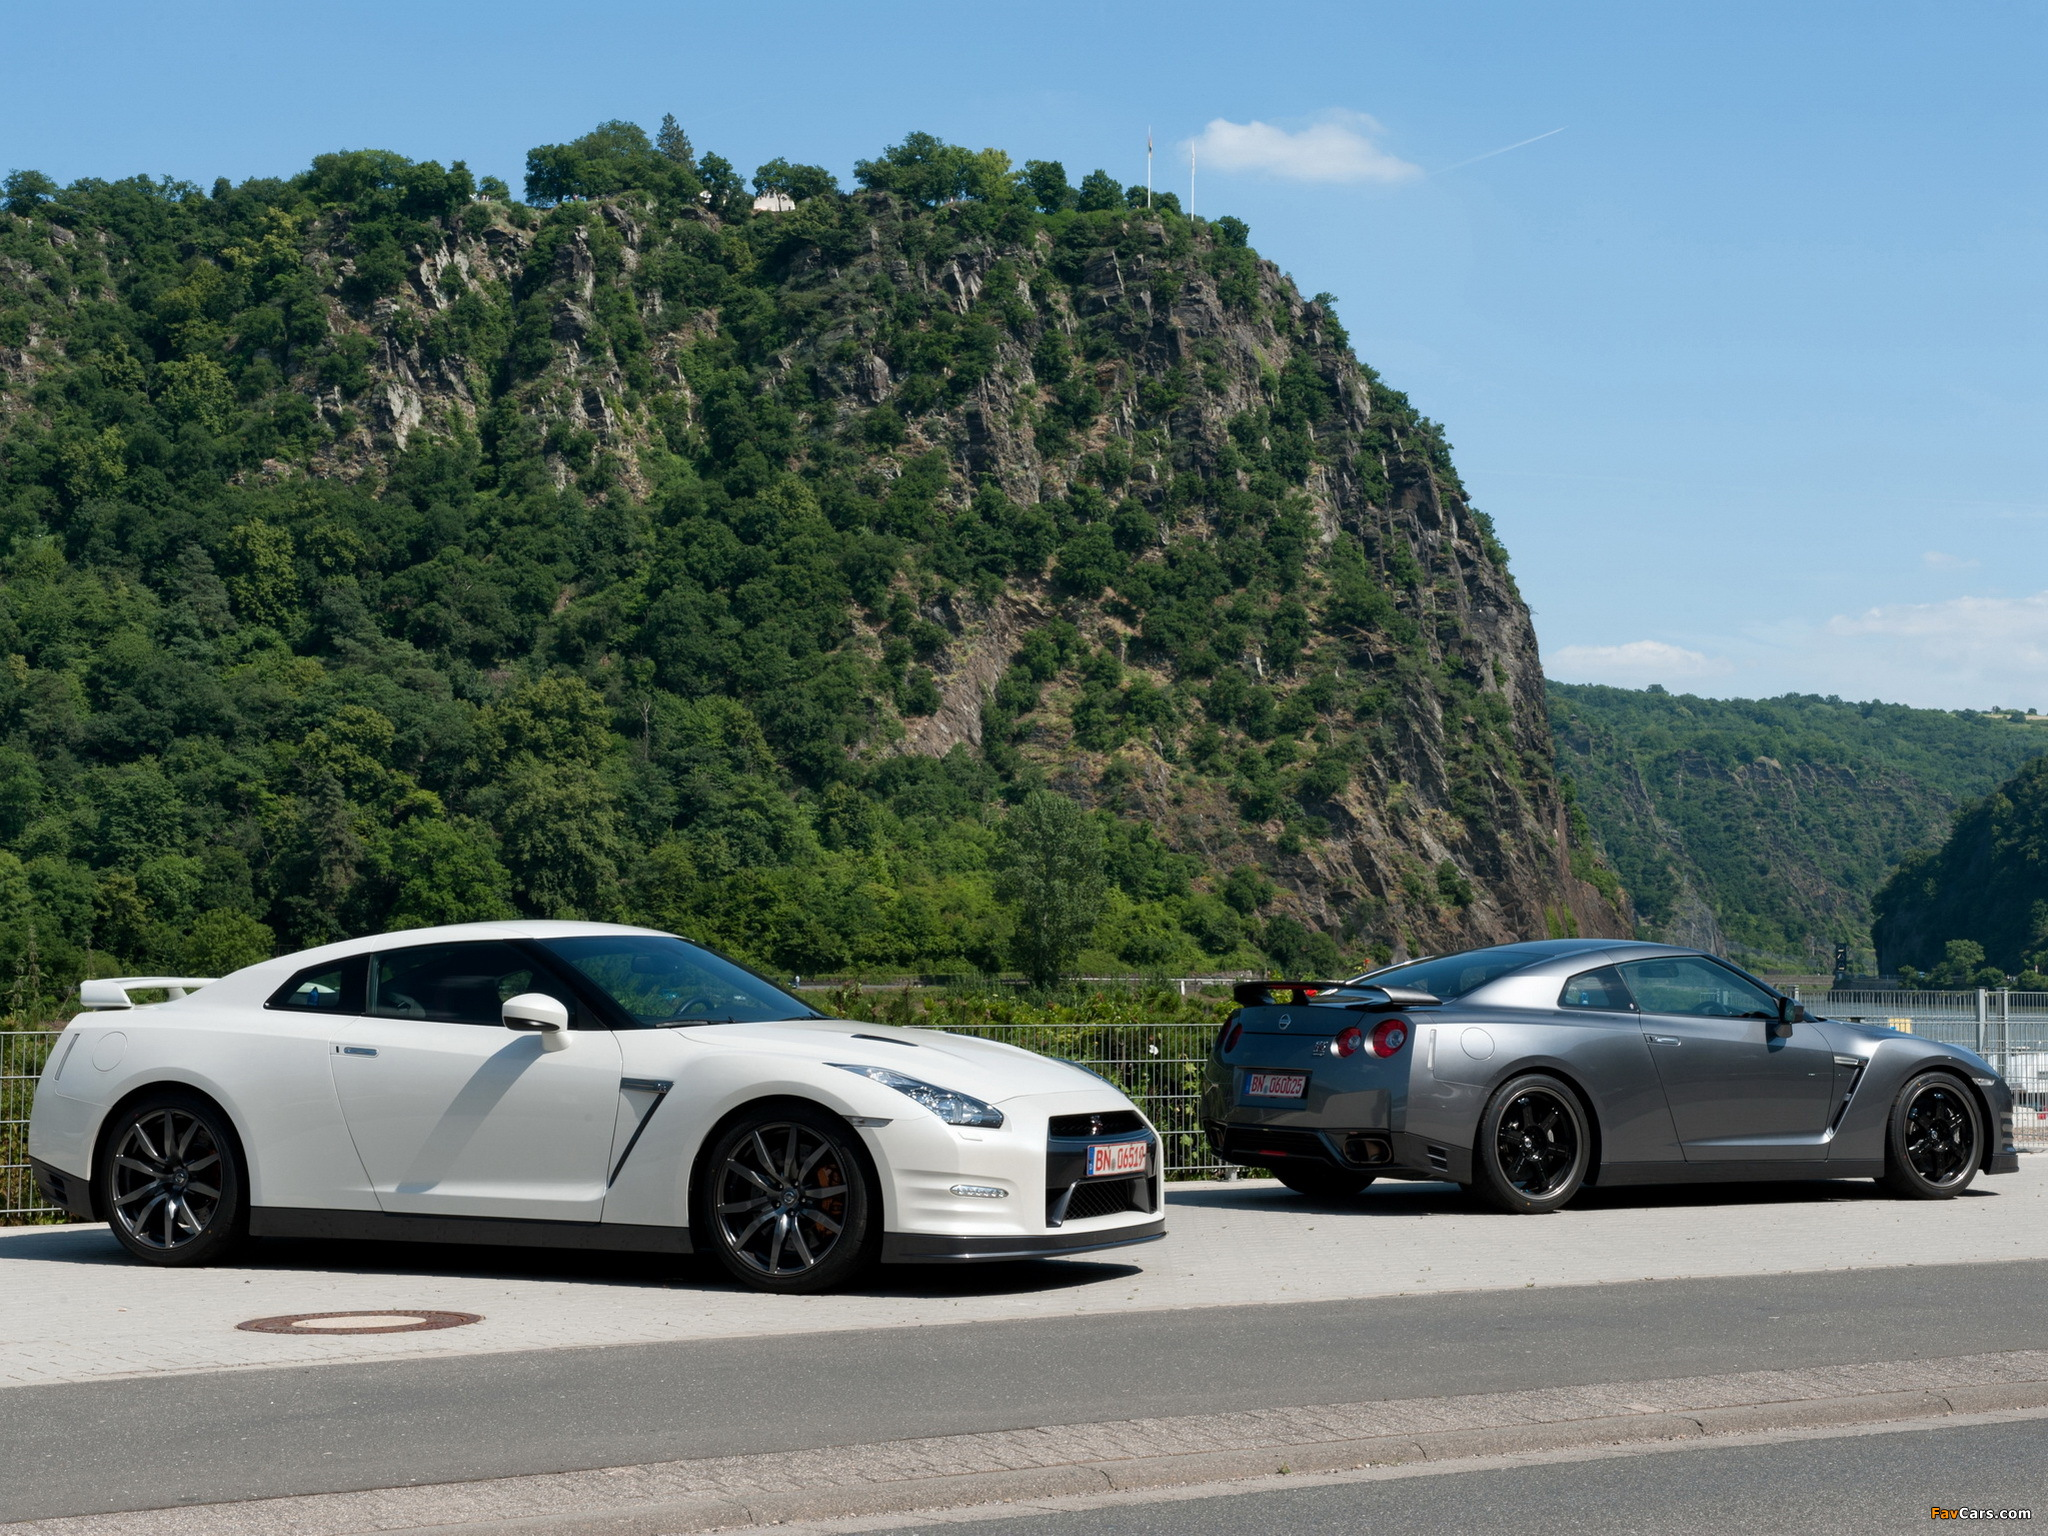 Pictures of Nissan GT-R (2048 x 1536)